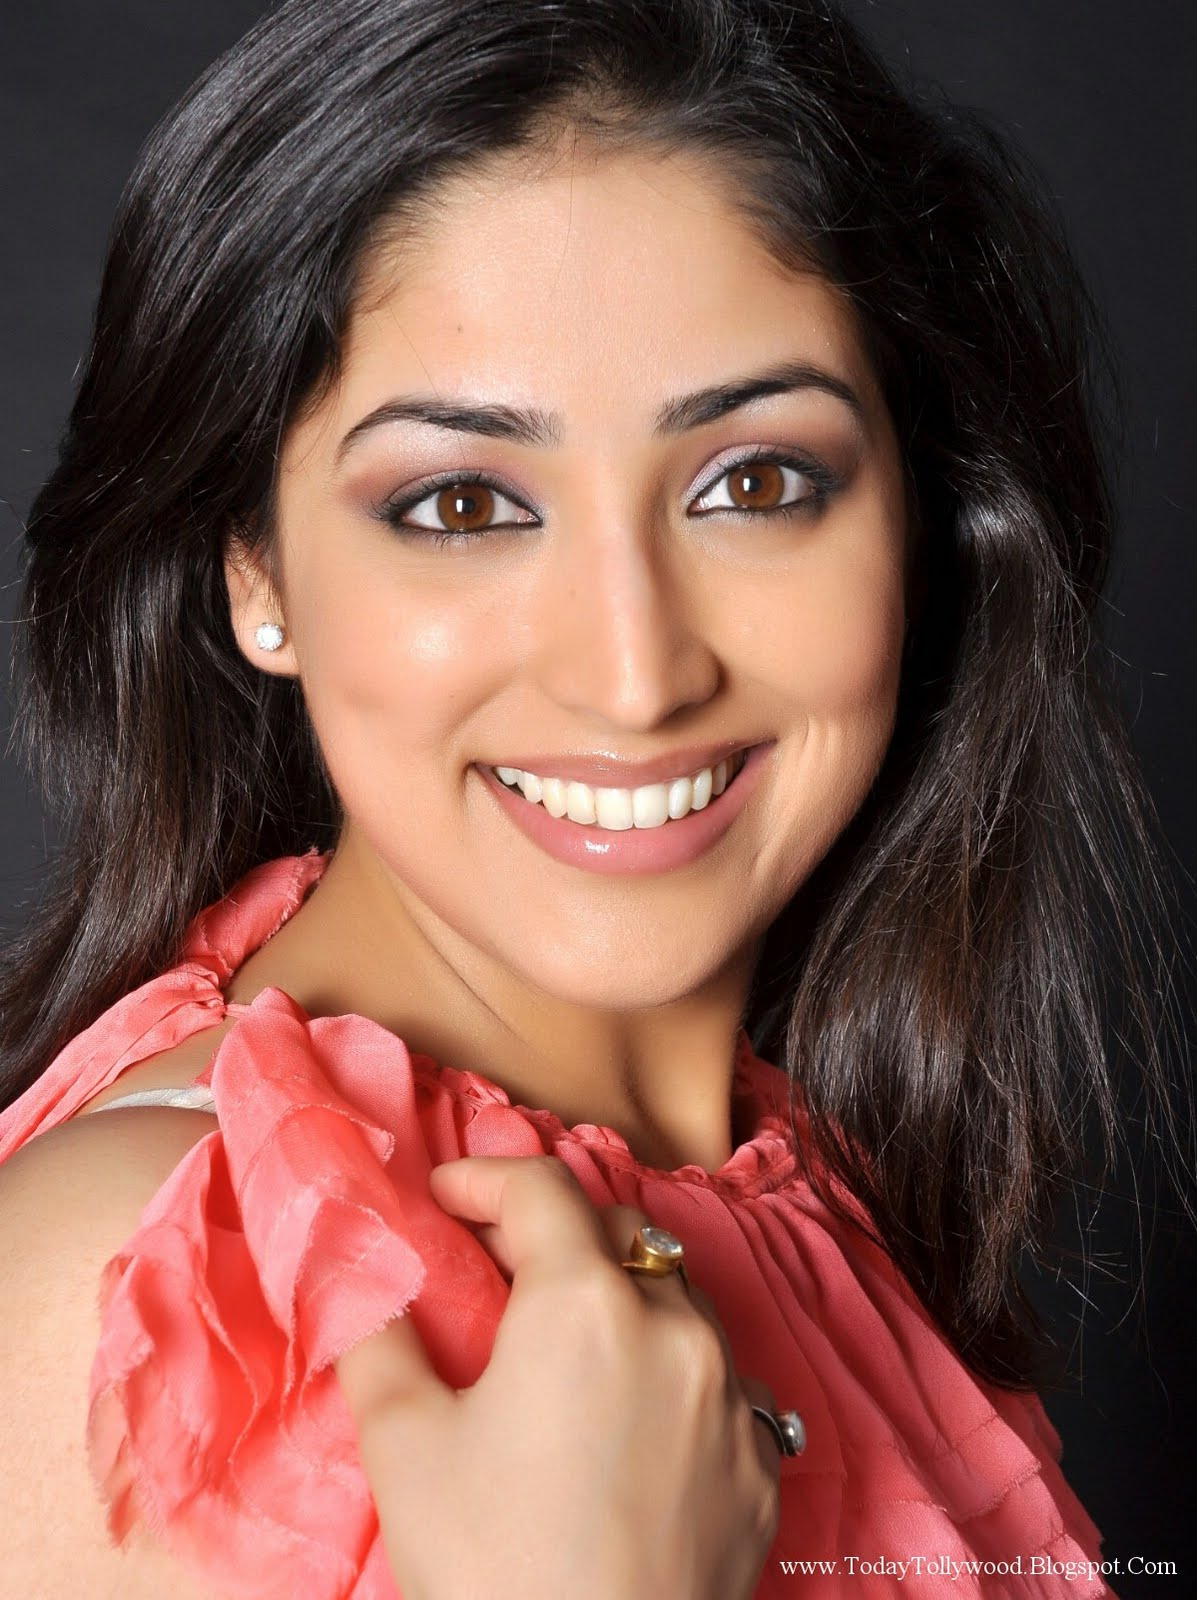 Wallpaper telugu wallpapers for mobile - Actress wallpaper download for mobile ...